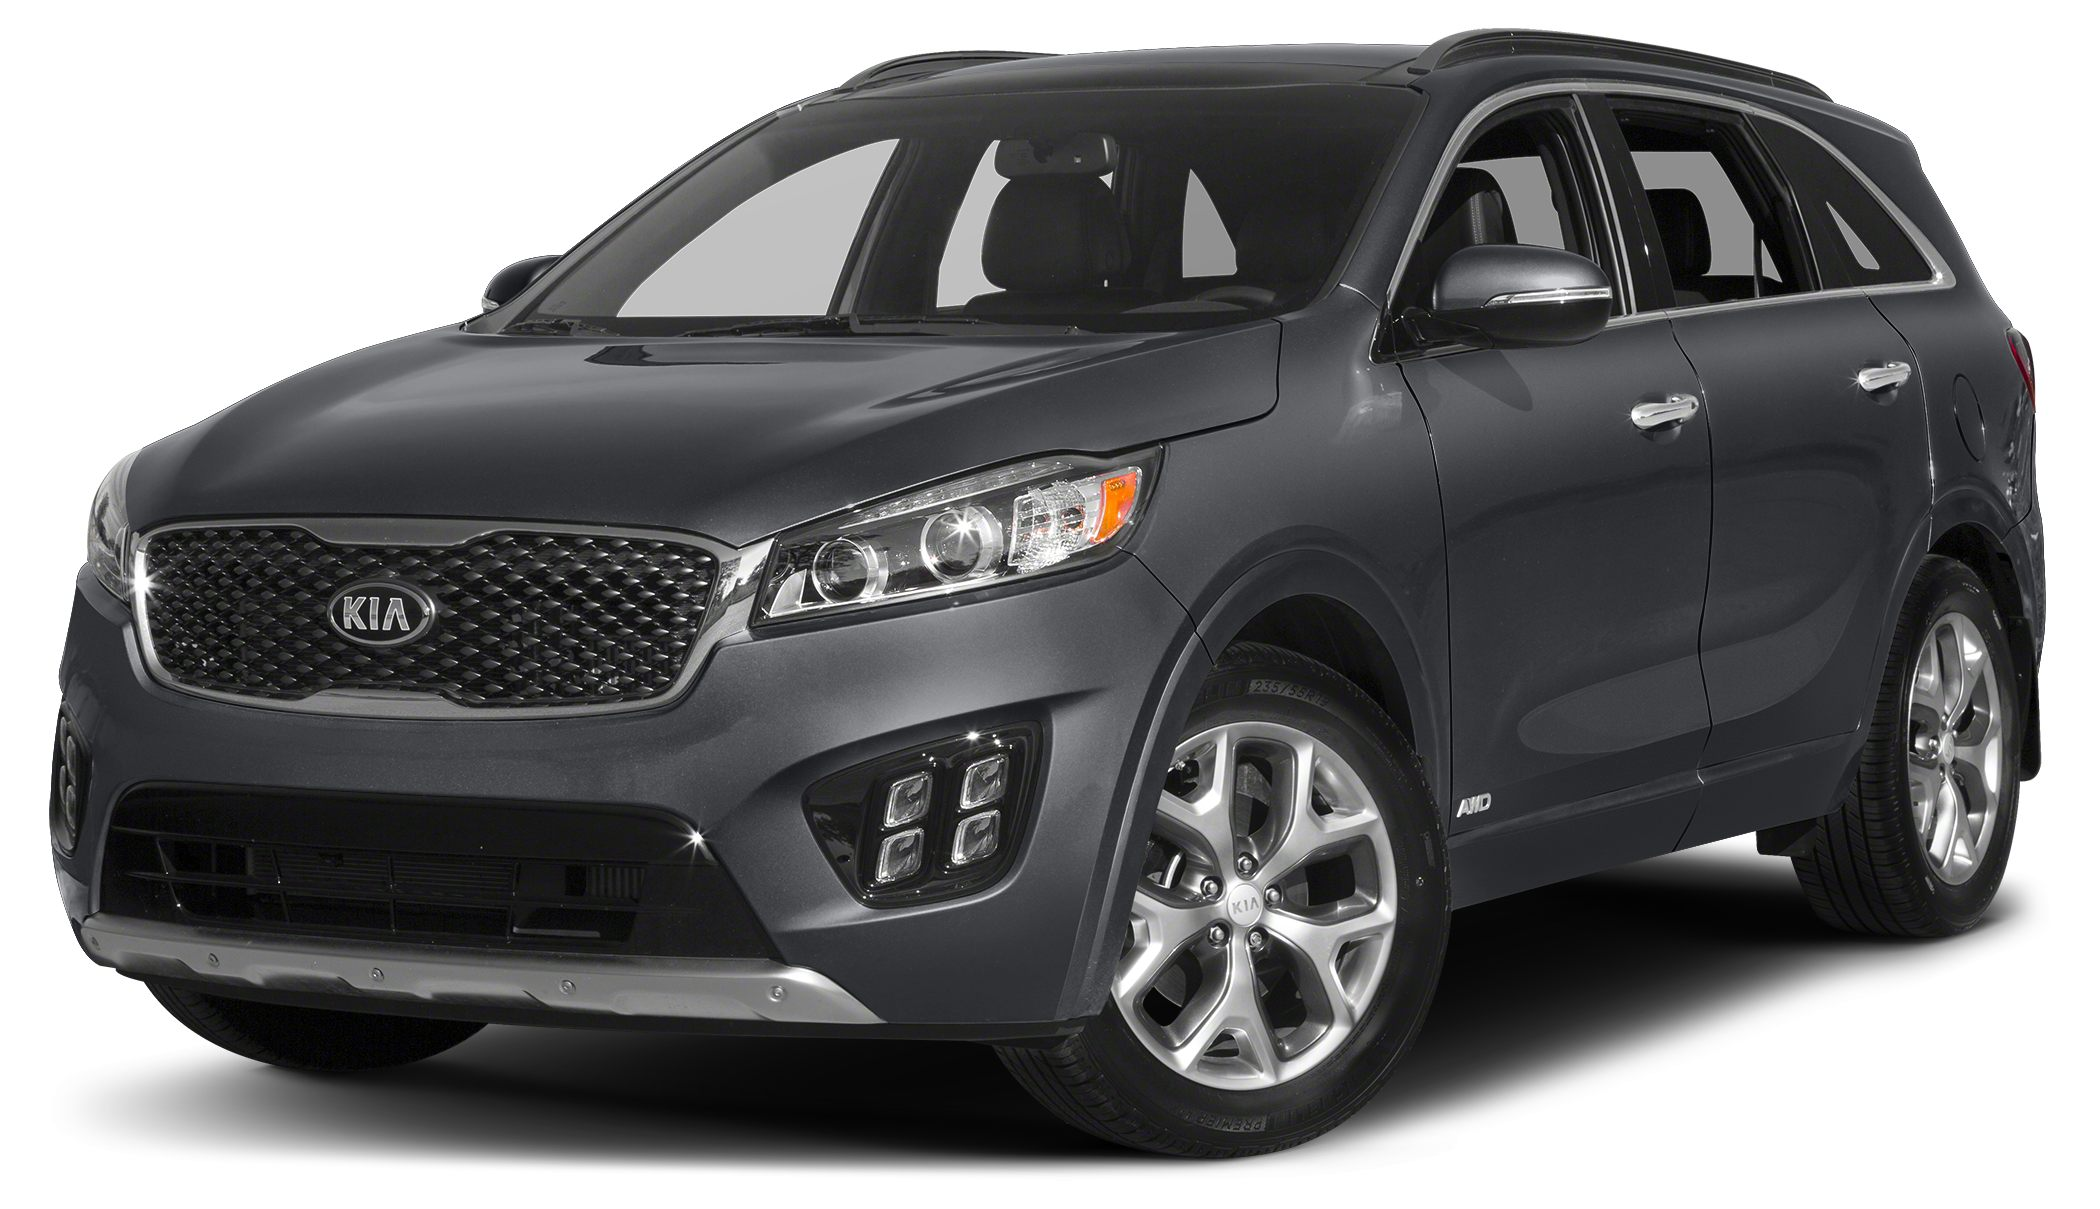 2018 Kia Sorento 33 SXL The 2018 Sorento is the most refined yet Designed with smooth sinuous l